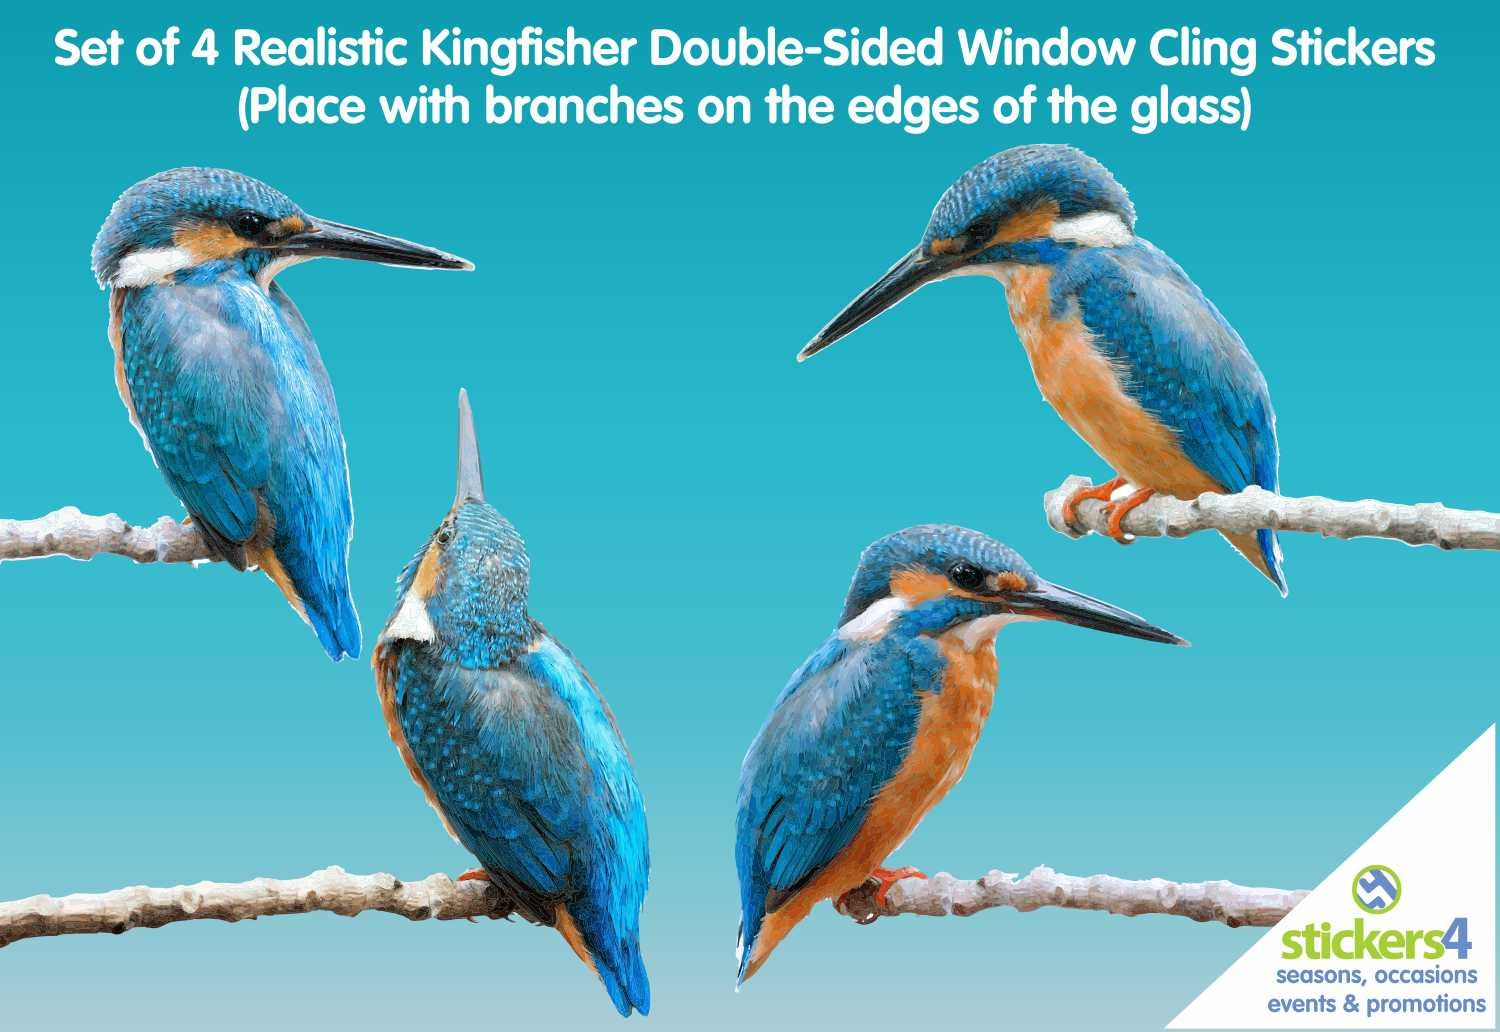 NEW! Set of 4 Photorealistic, Double-Sided, Kingfisher Window Cling Stickers - Beautiful Anti Collision Bird Strike Window Stickers - Fast UK Delivery! Stickers4